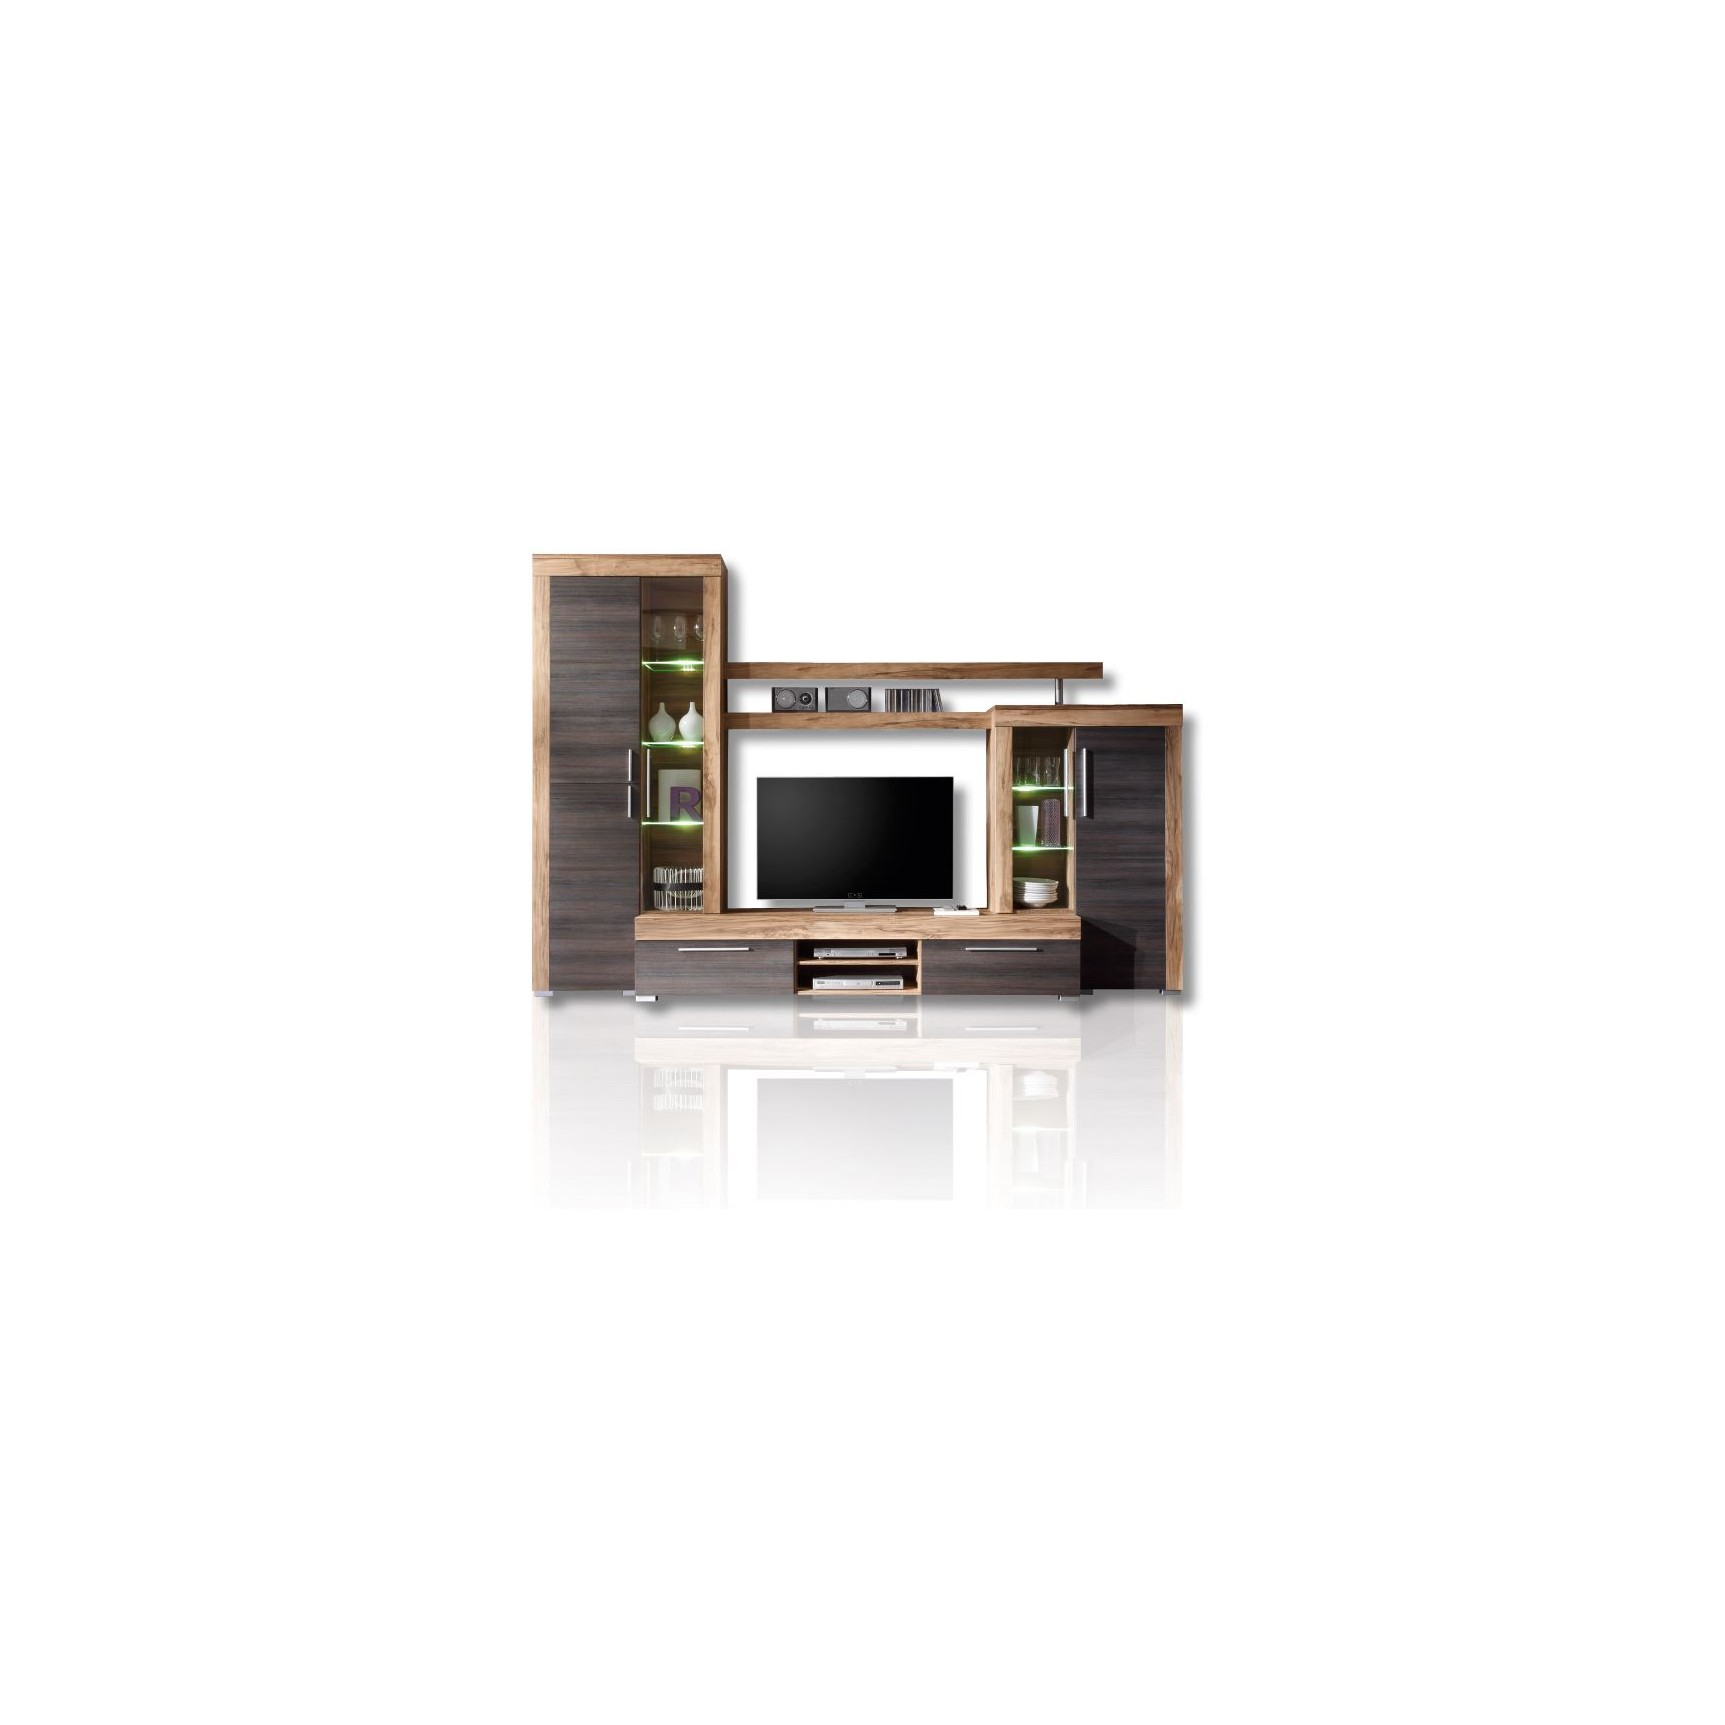 meuble tv alby 140cm meuble tv design boutique de meuble desing. Black Bedroom Furniture Sets. Home Design Ideas